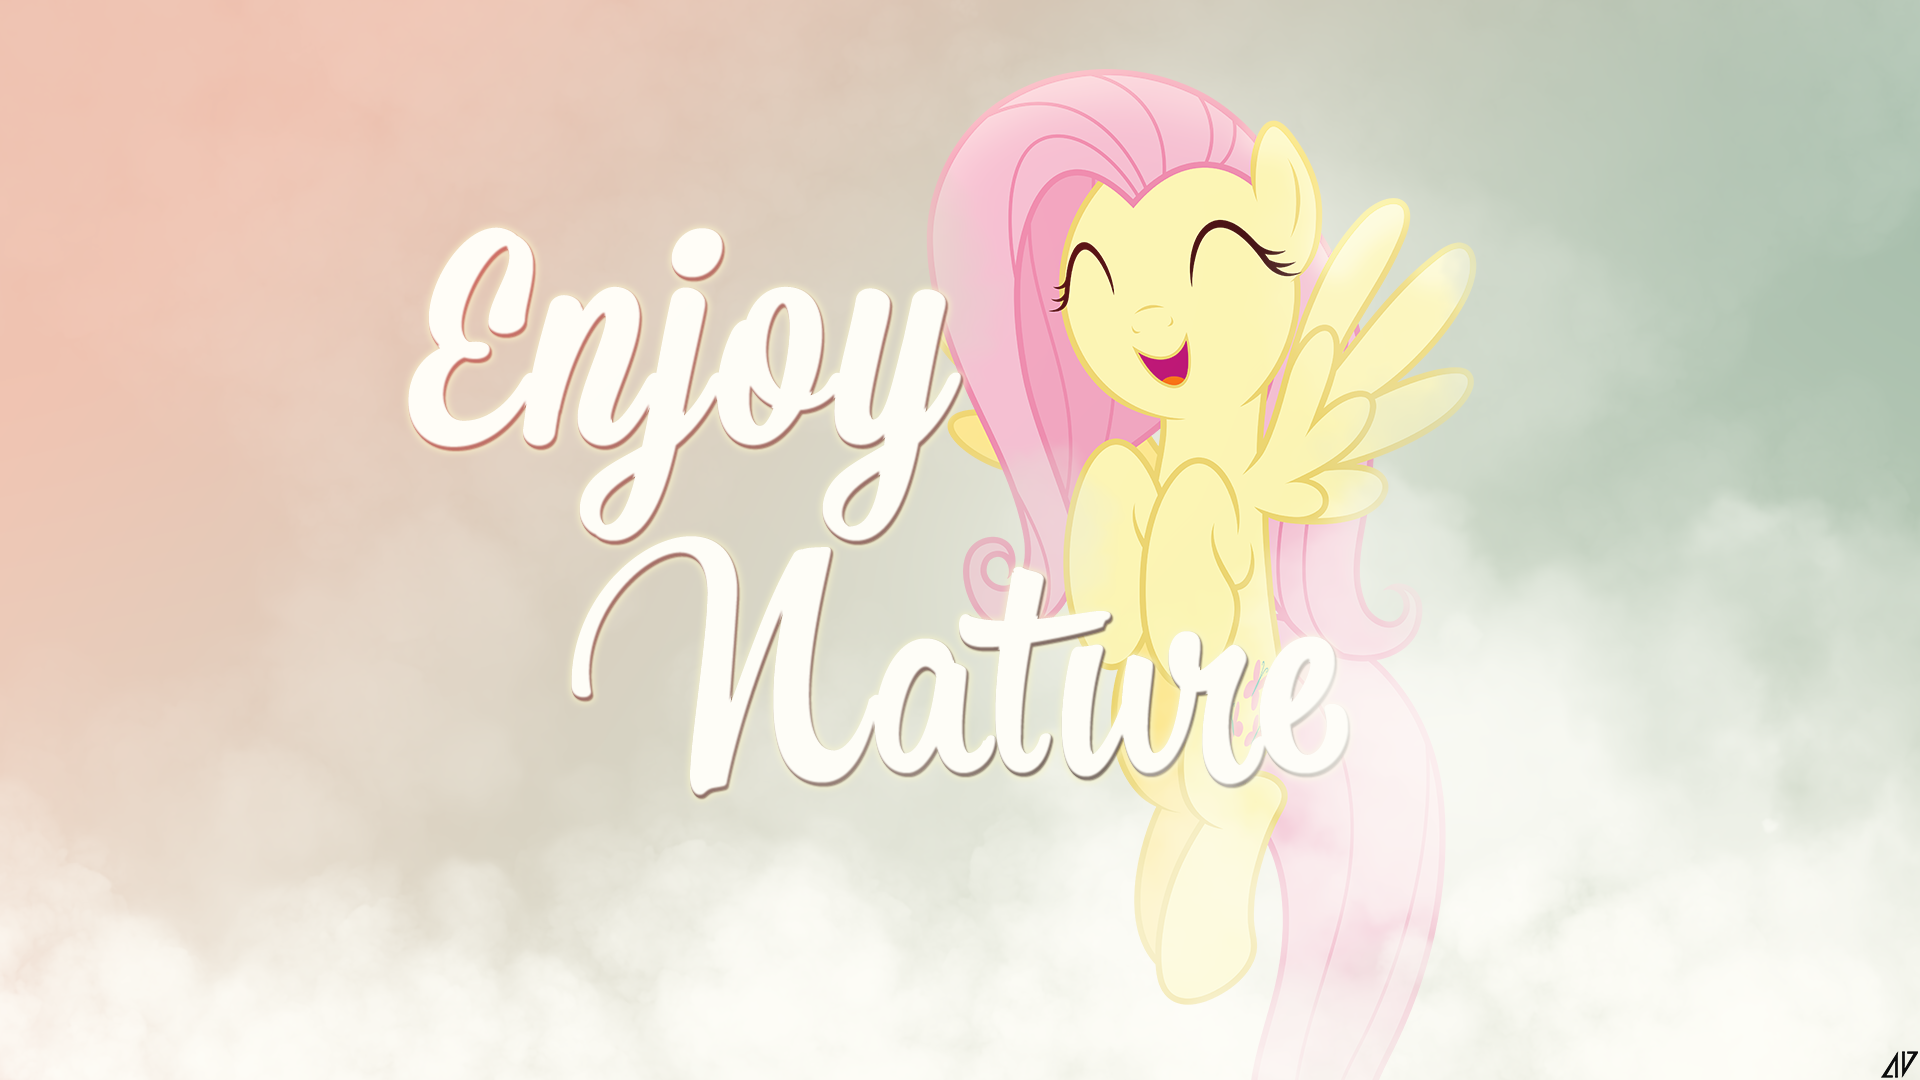 Enjoy Nature by Hawk9mm and JAVE-the-13